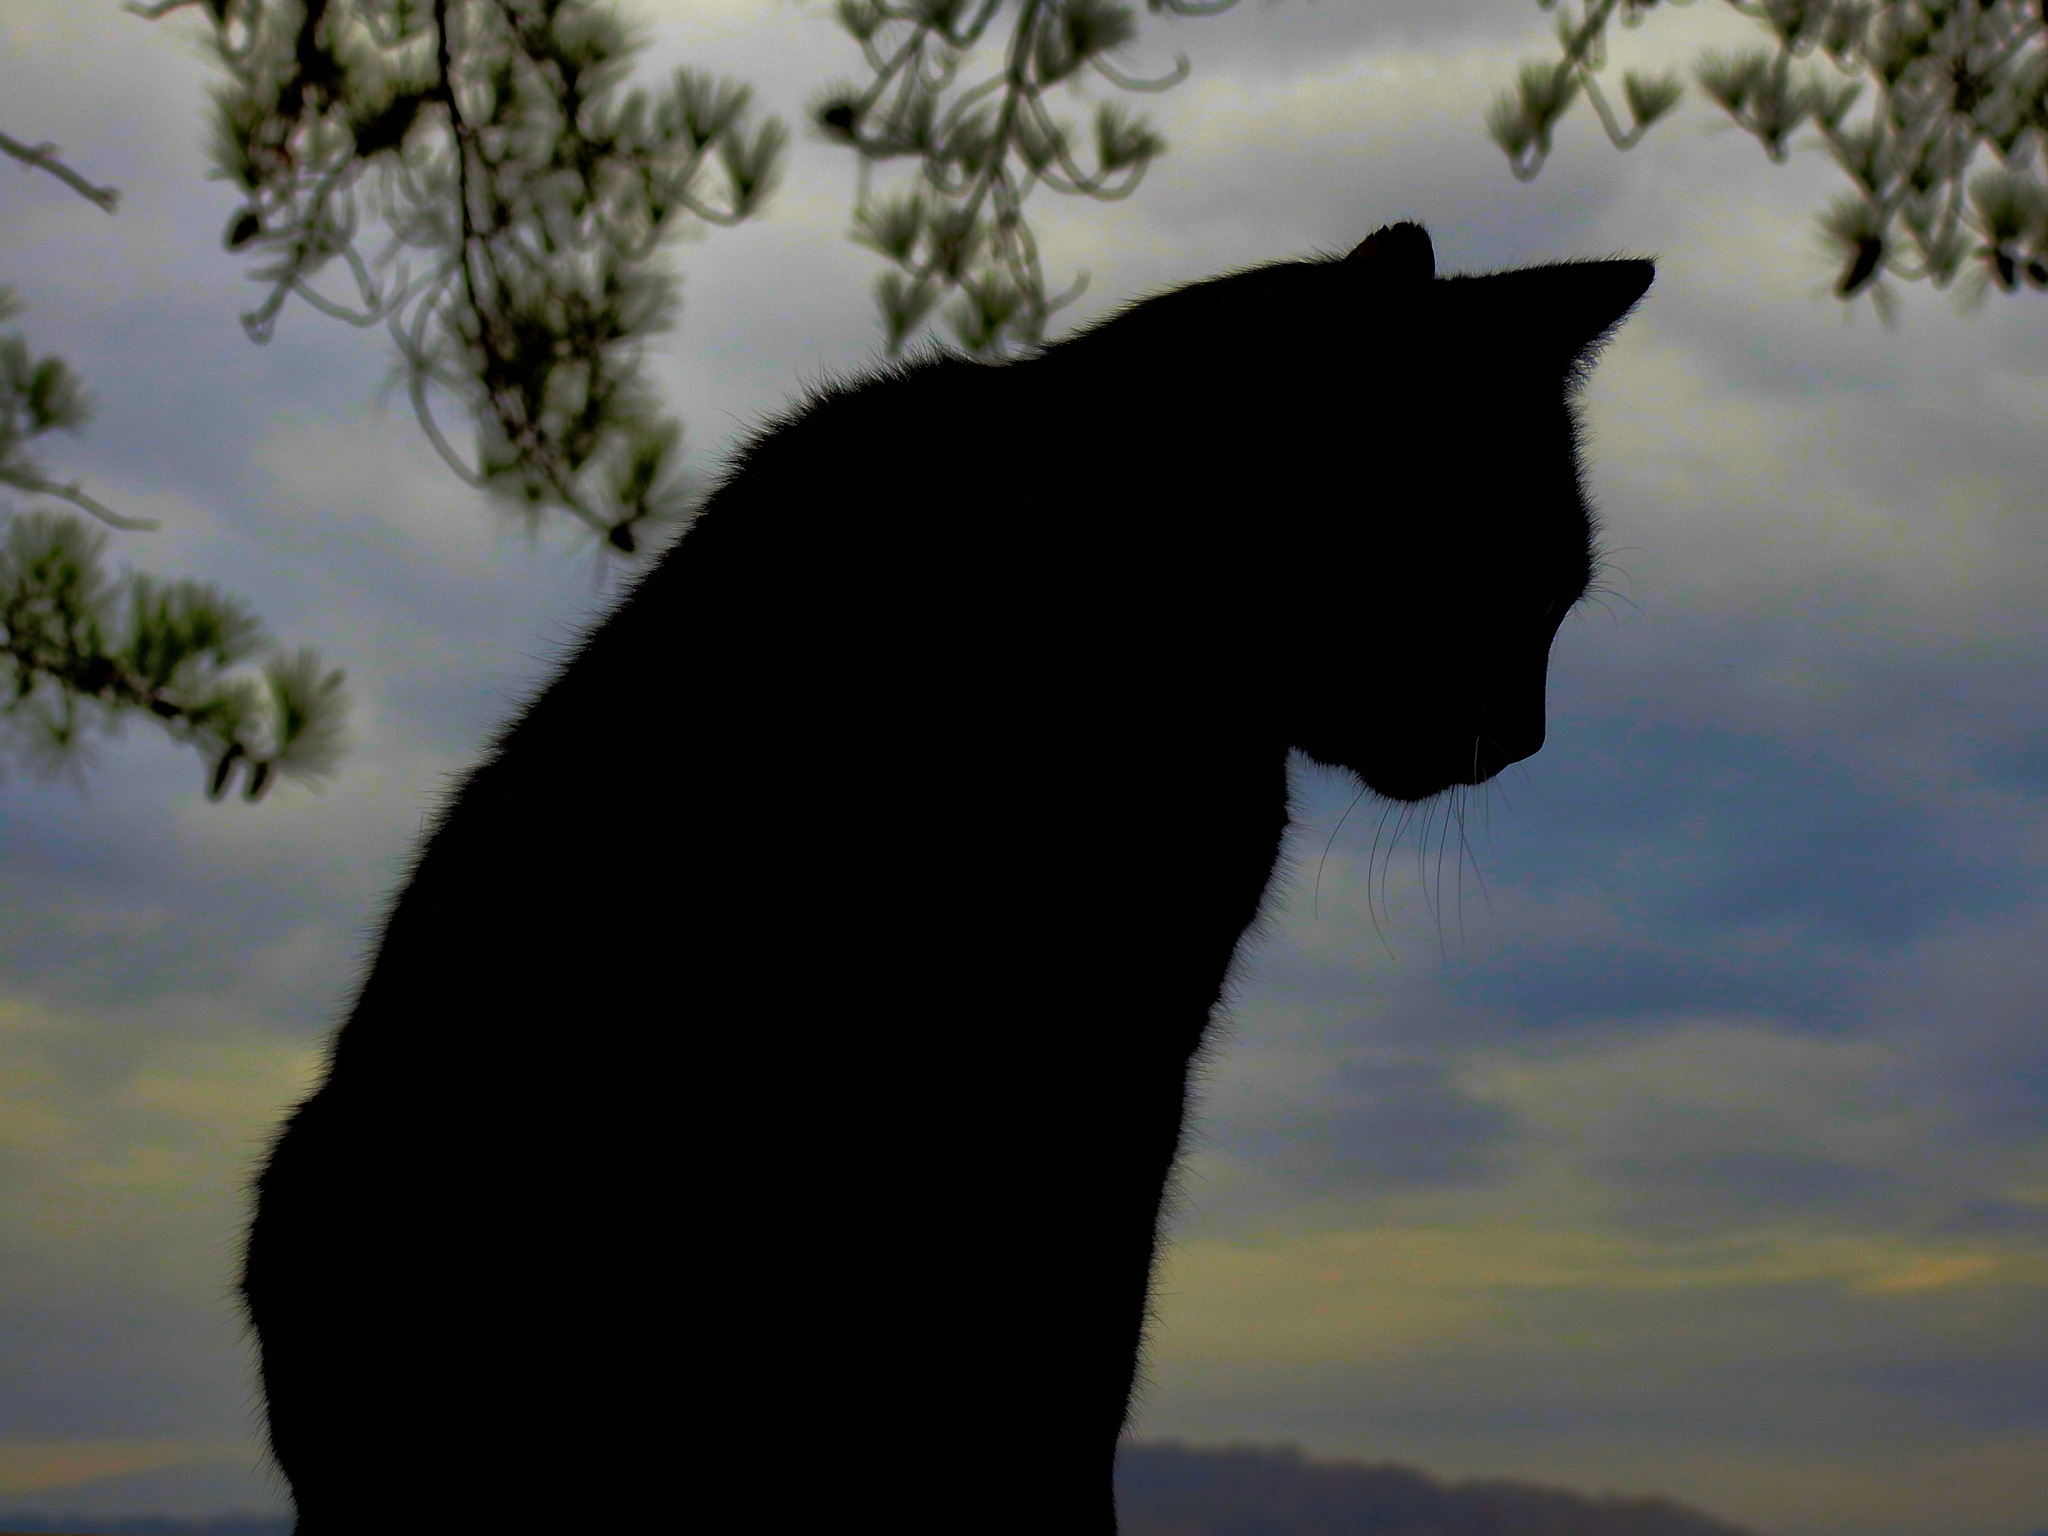 Cat Silhouette by Patty Stockton